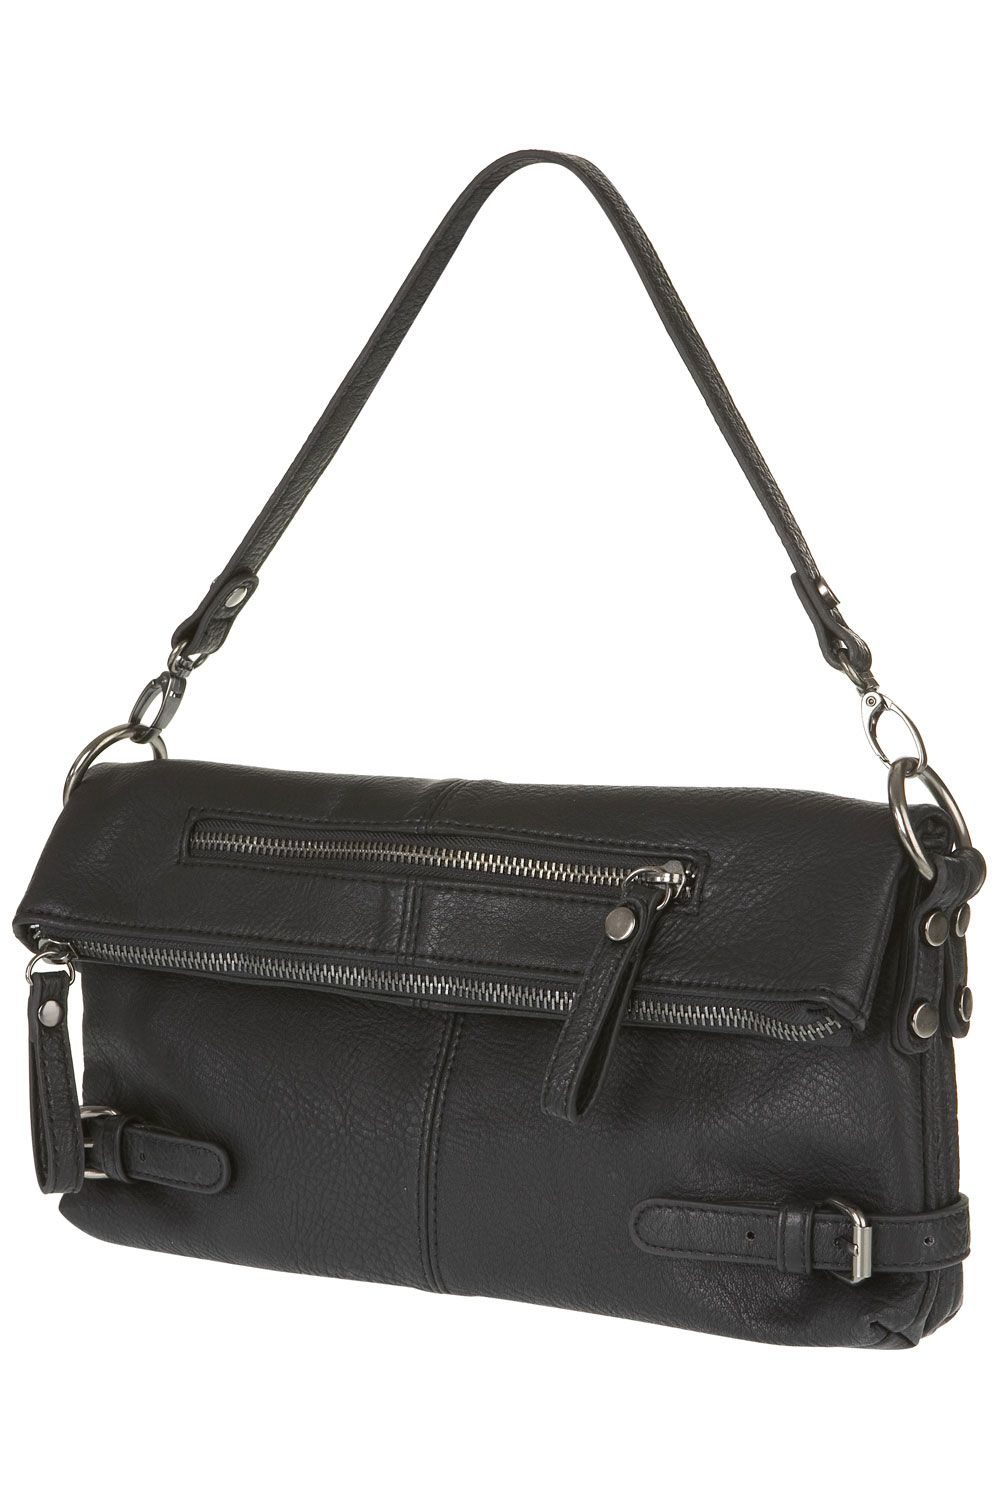 Warehouse Folded shoulder bag Black product image